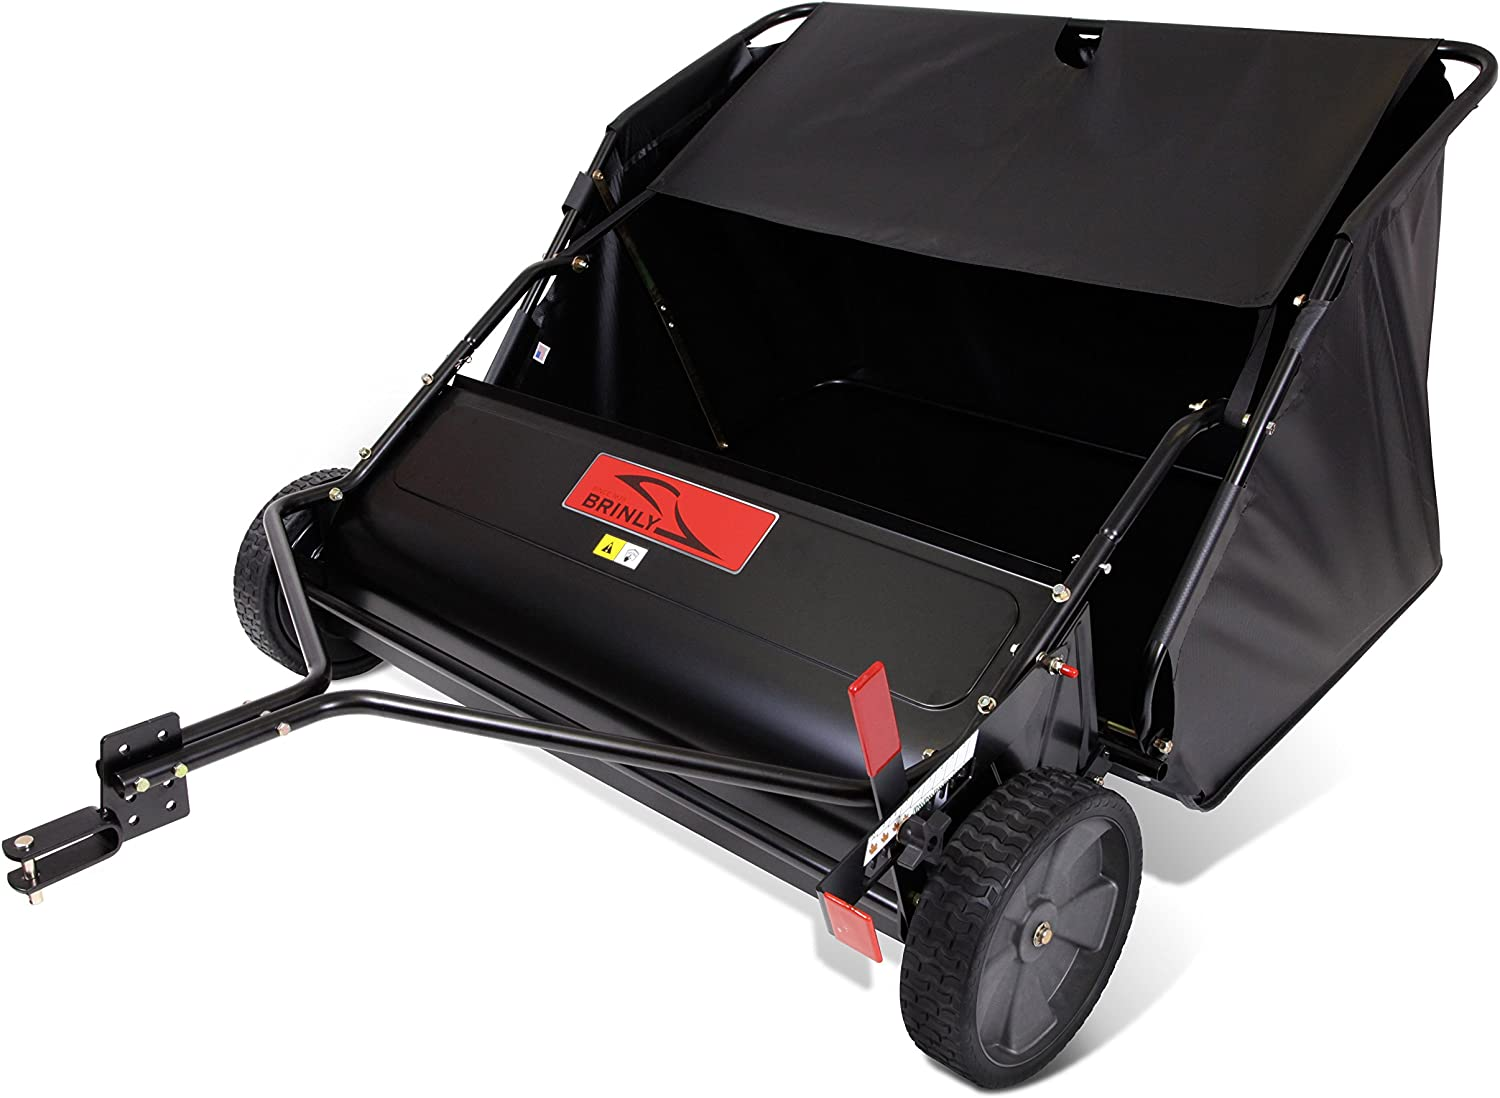 Brinly STS-427LXH 20 cu. ft. Lawn Sweeper